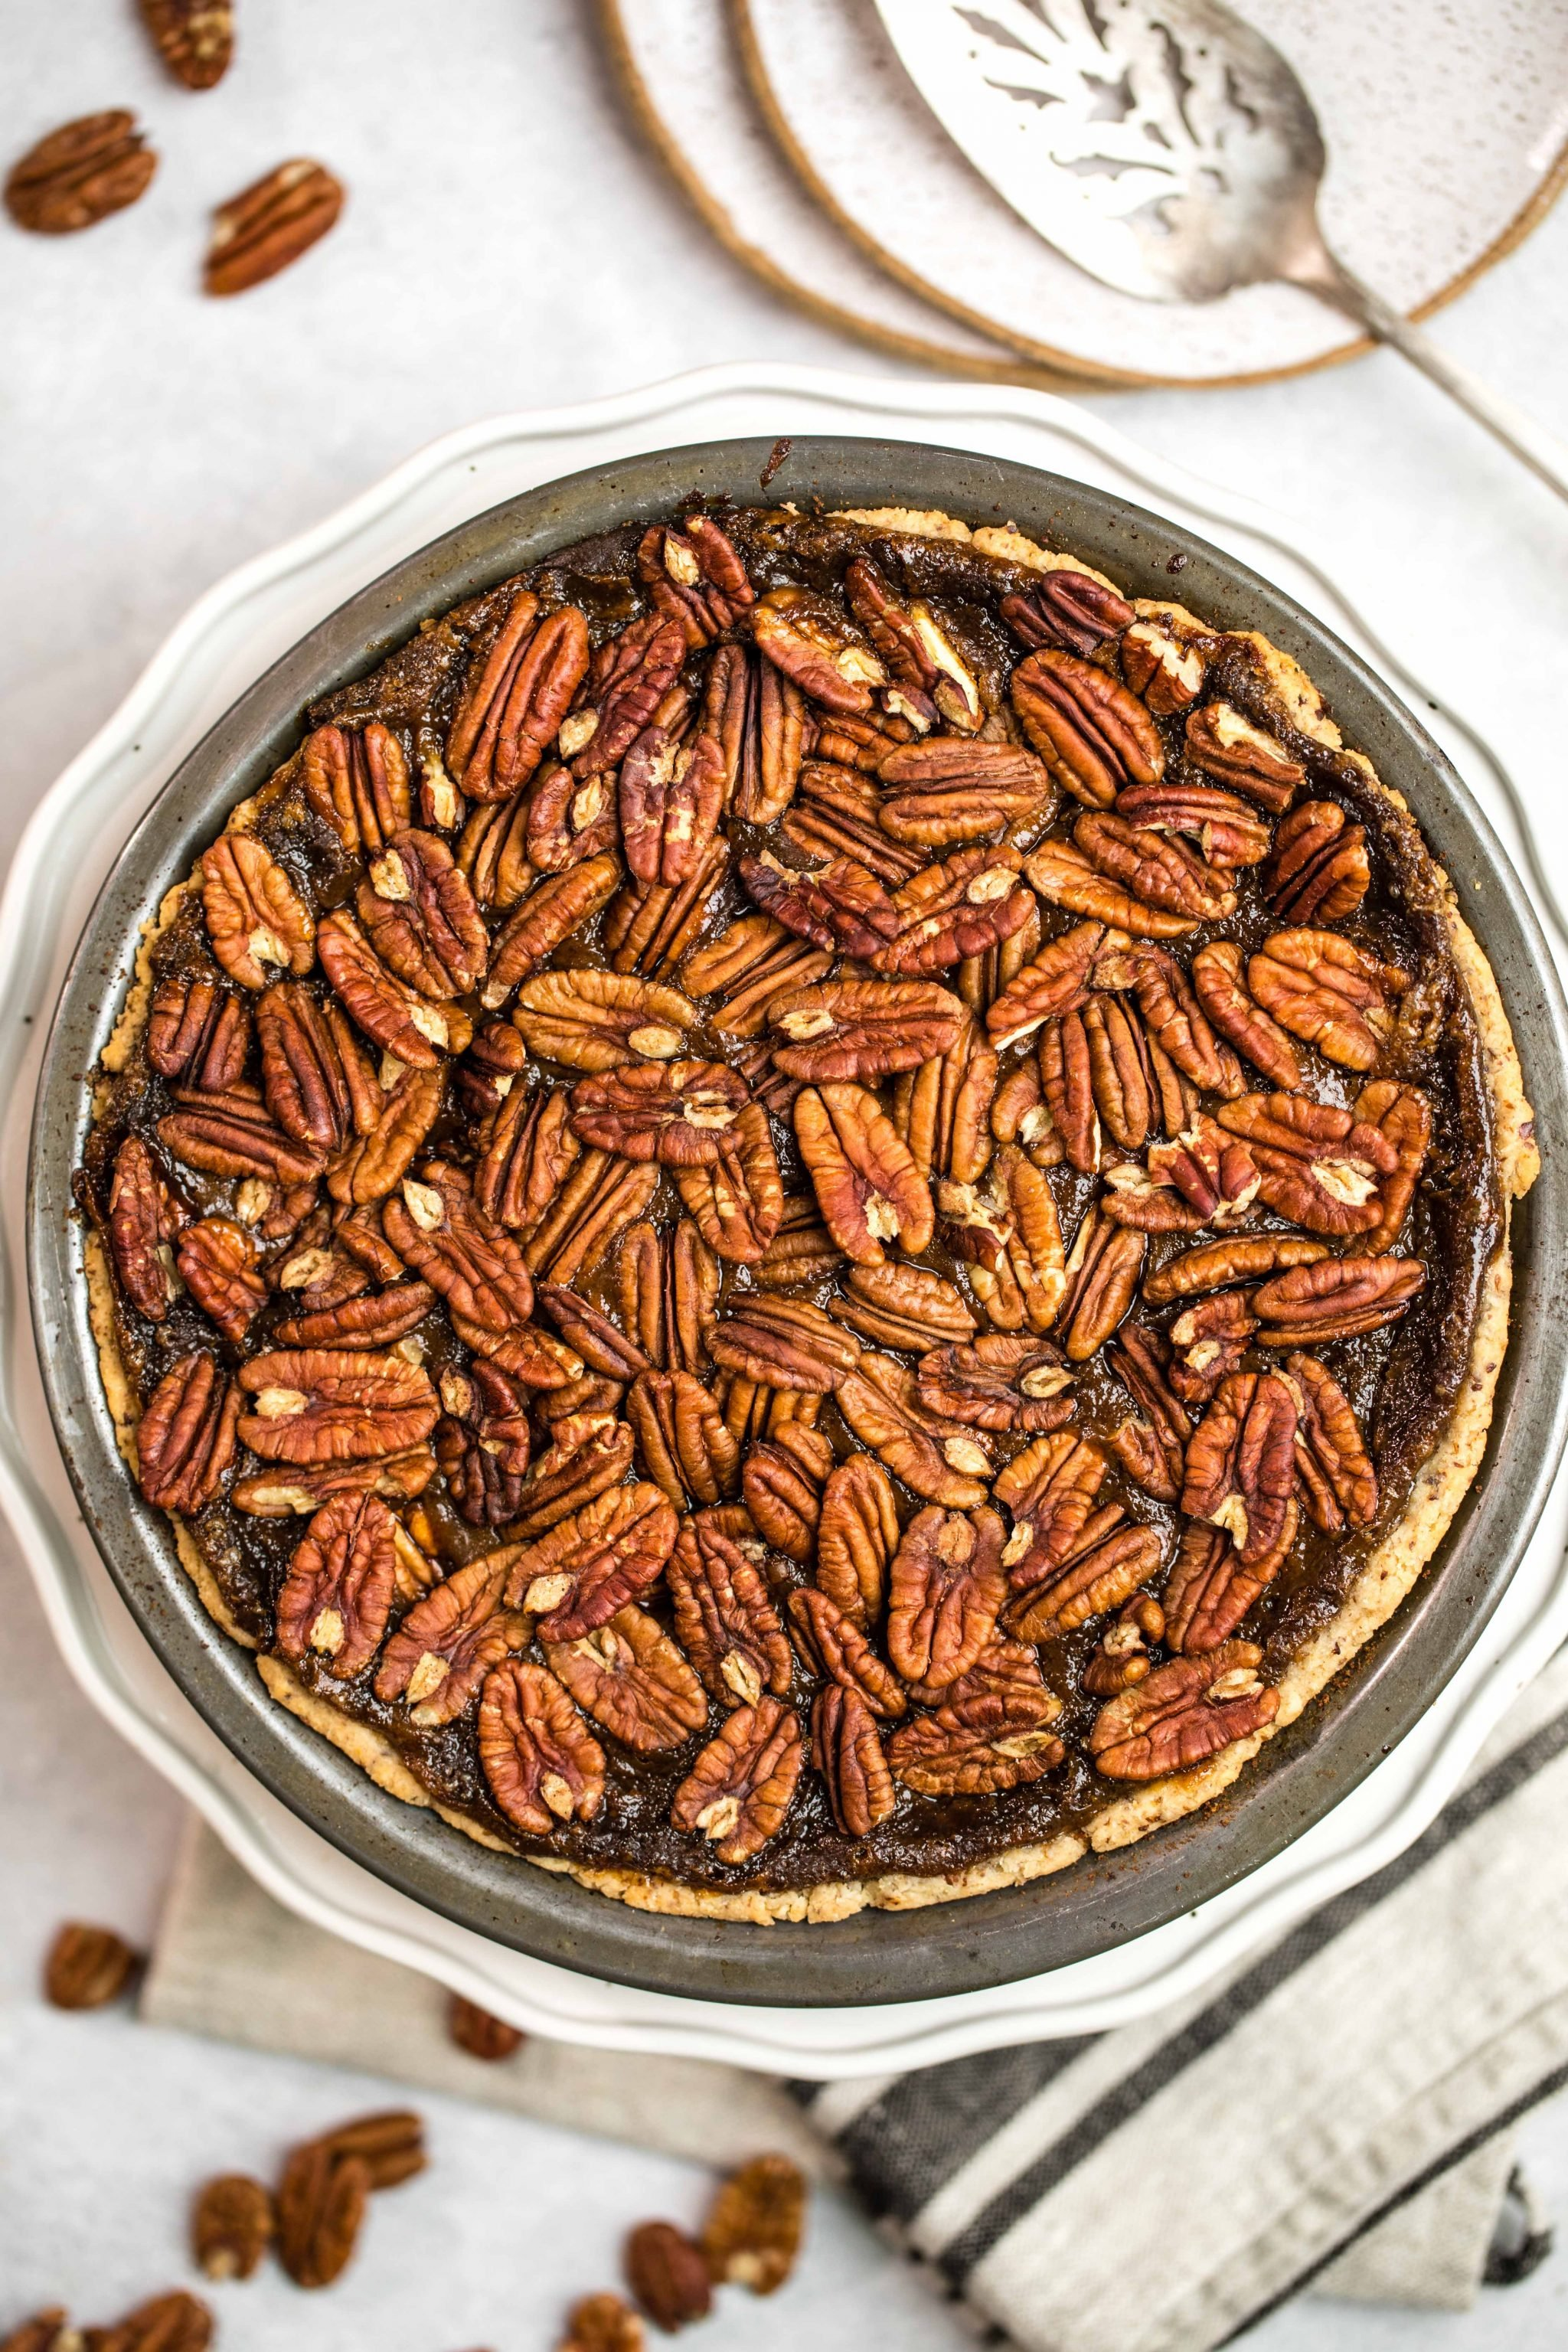 vegan pecan pie on a table with pecans around